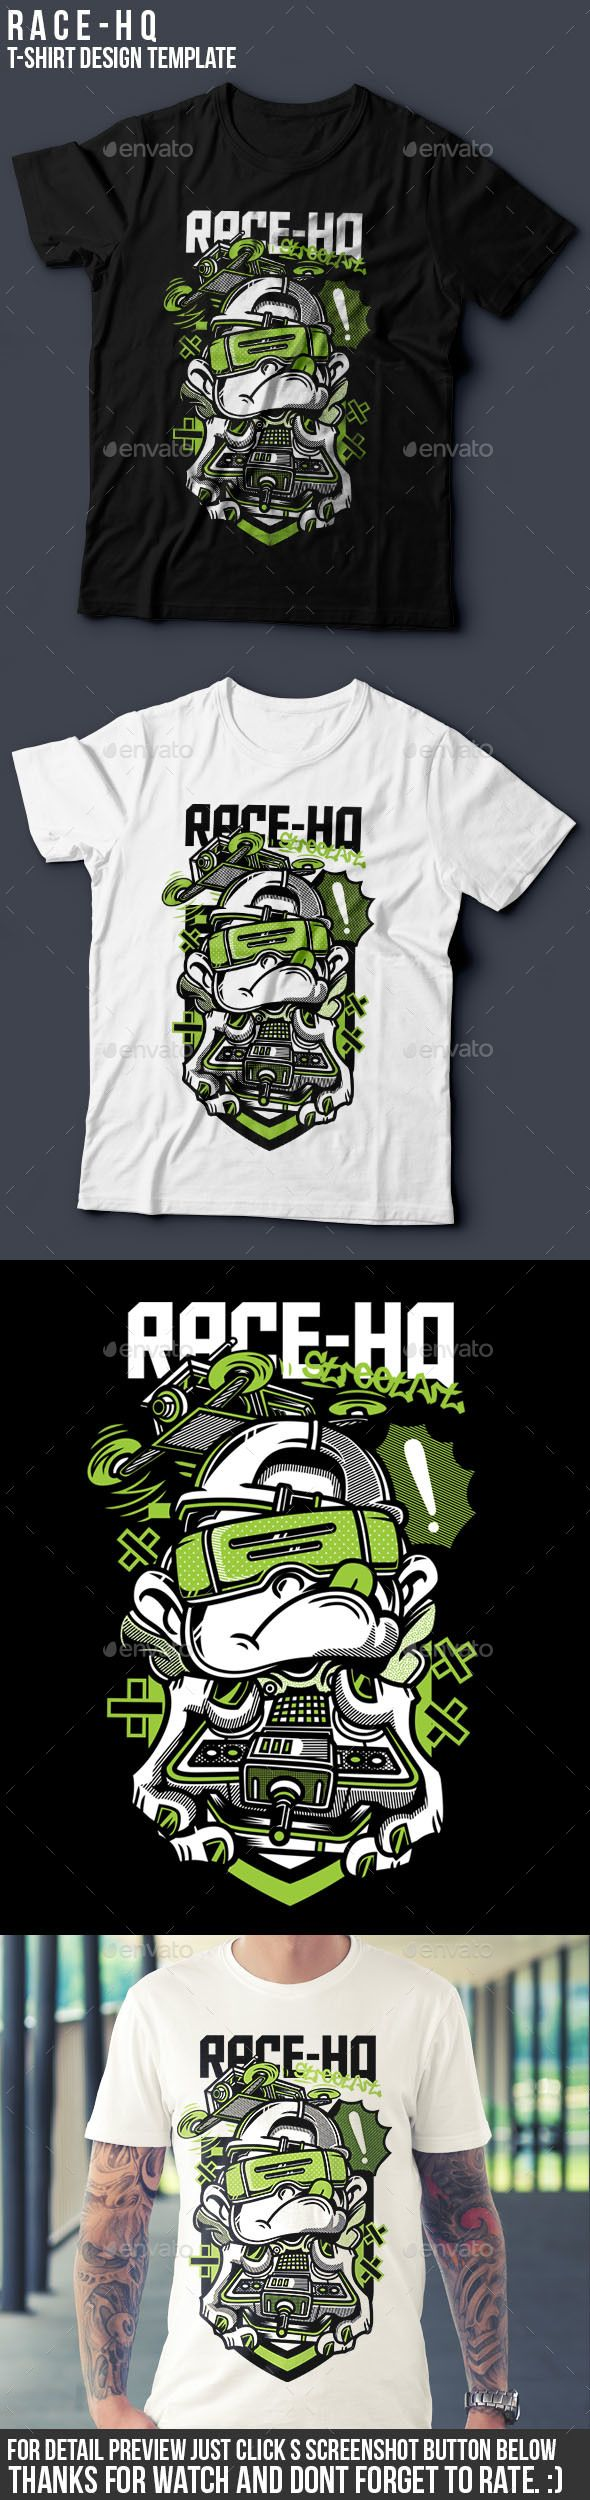 White t shirt eps - Race Hq T Shirt Design